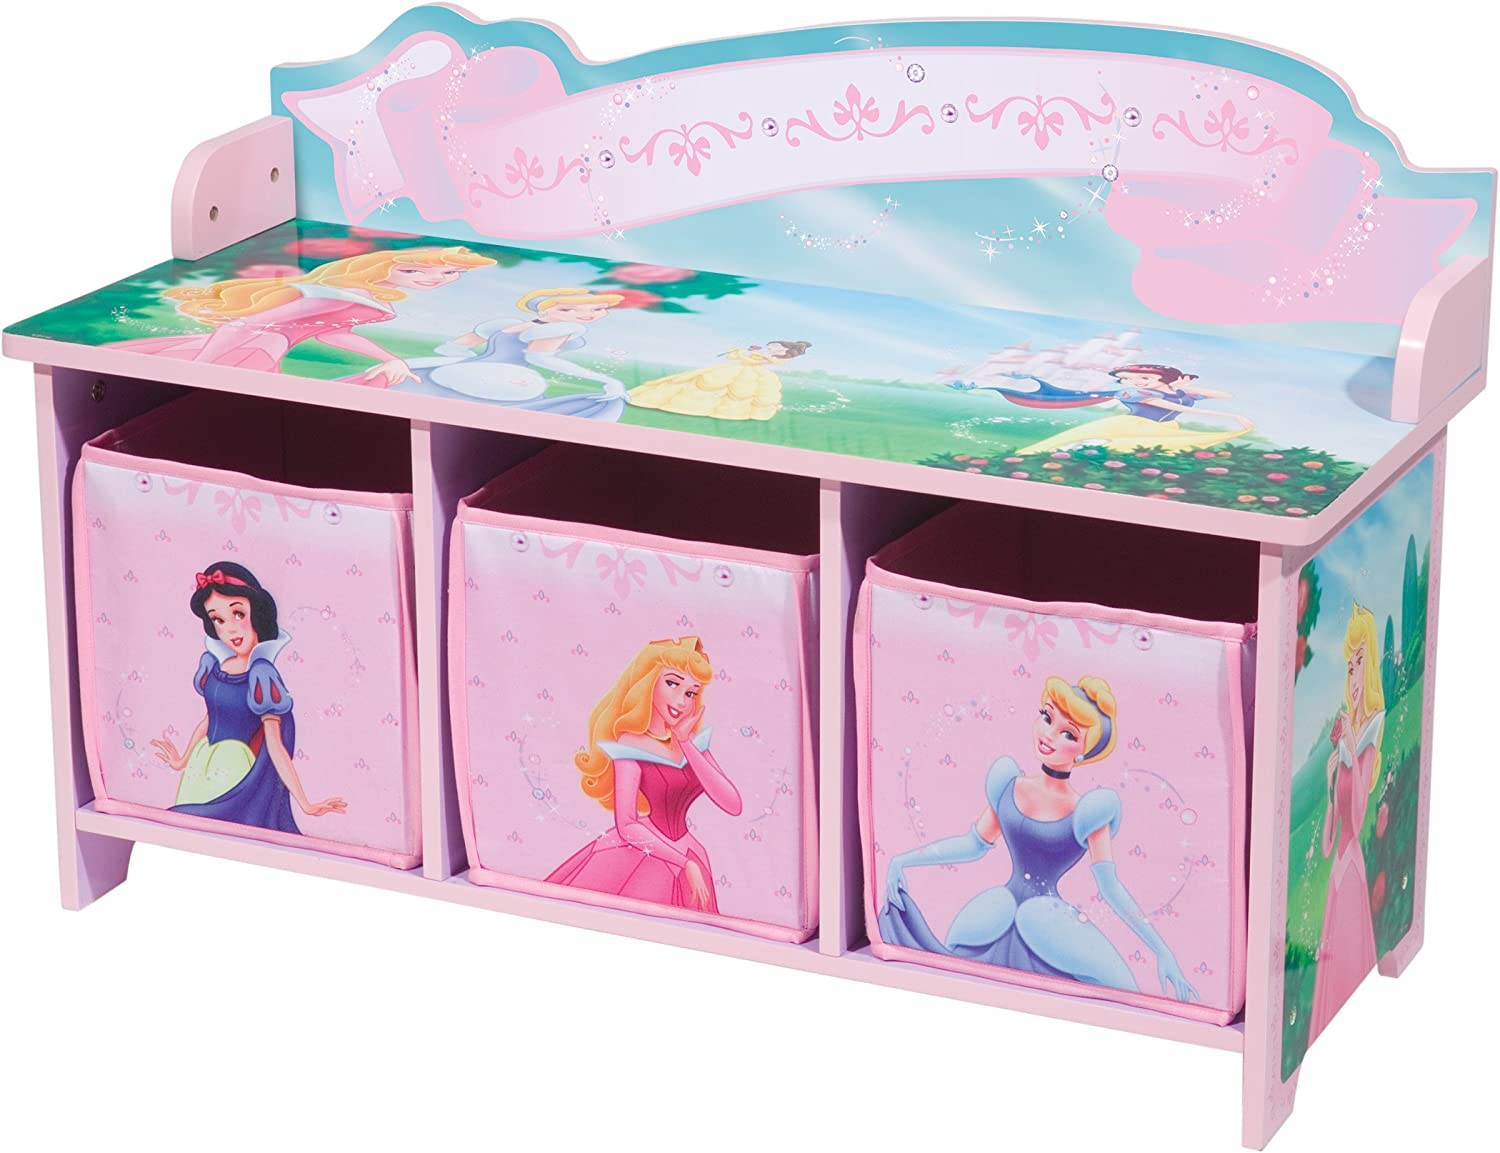 Amazon.com: Delta Enterprise Disney Princess 3 Bin Storage Toy Bench: Toys  U0026 Games